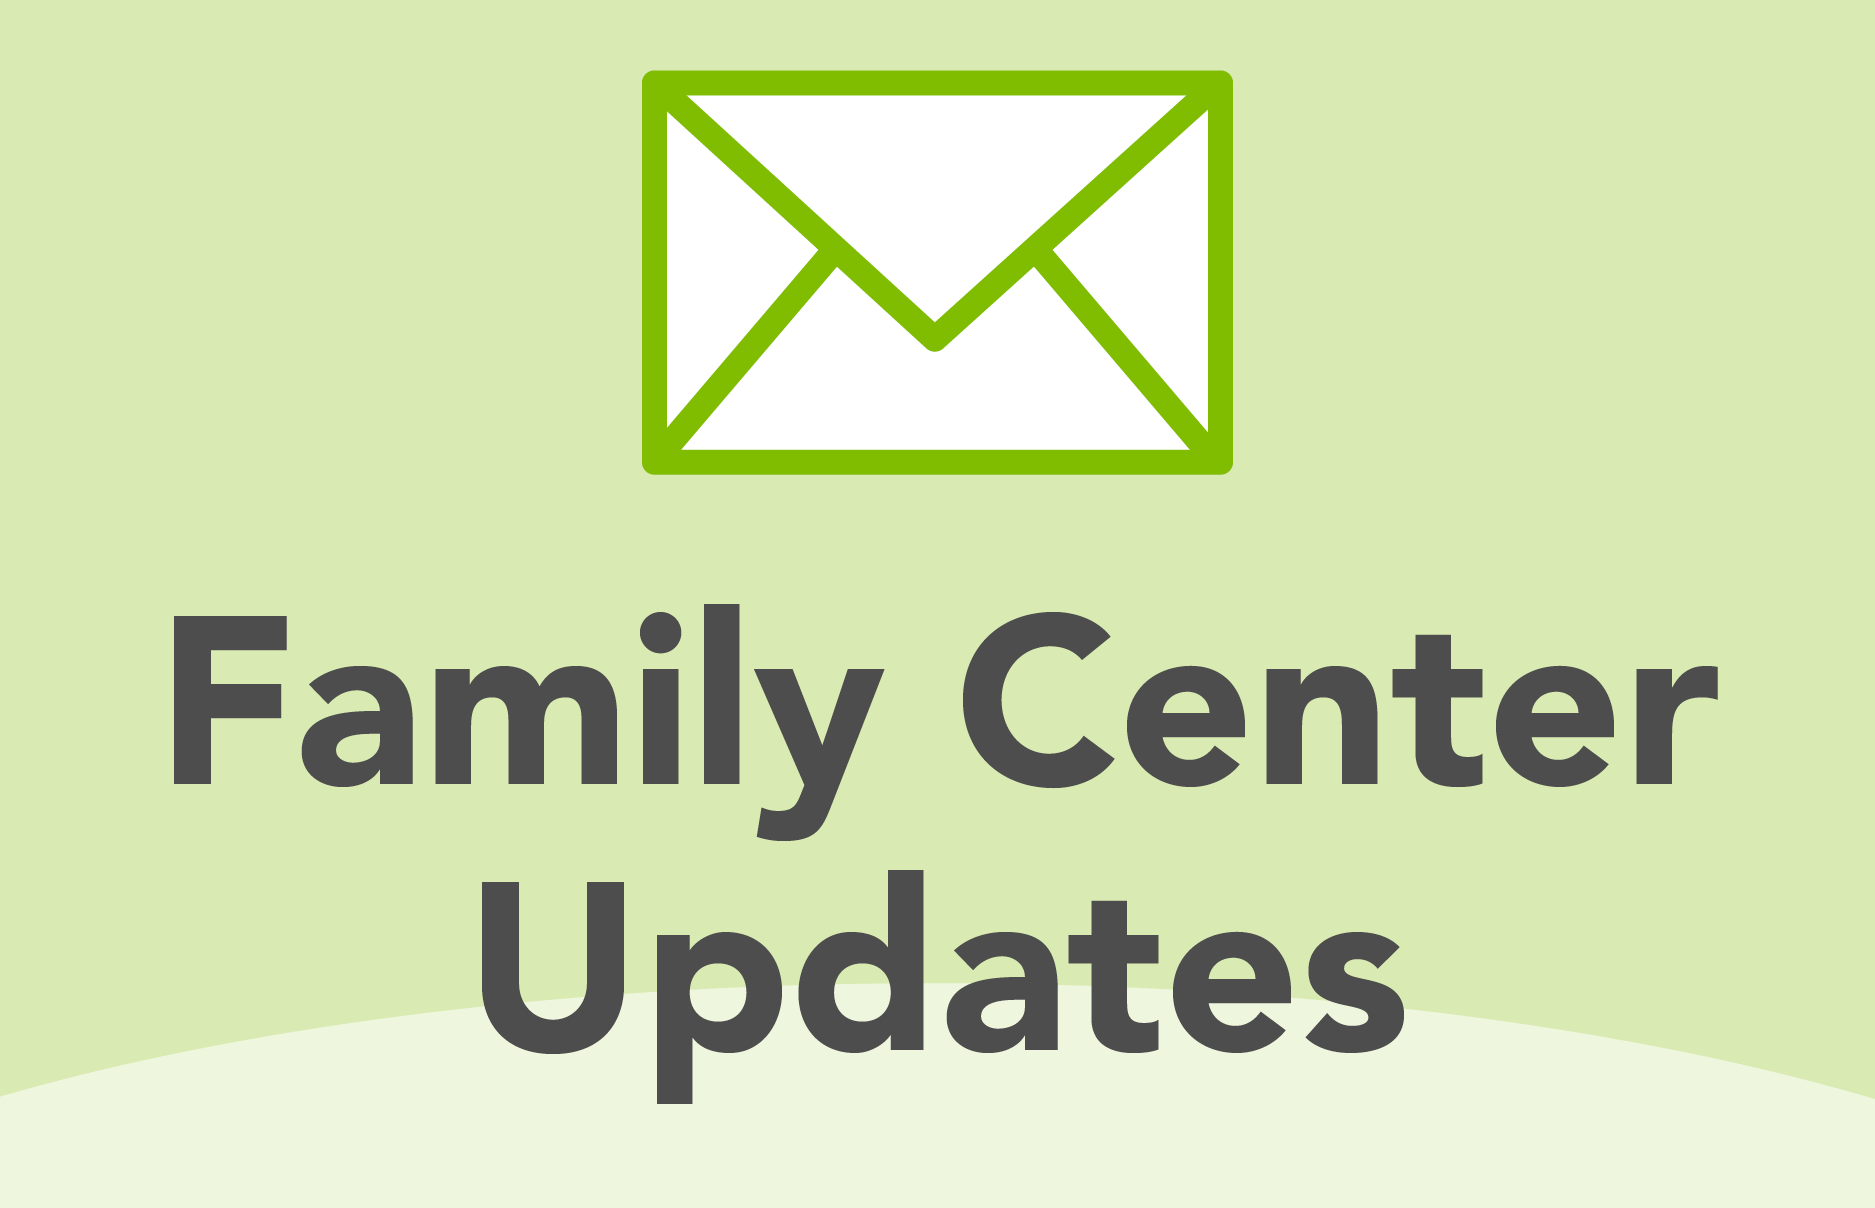 Family Center Updates